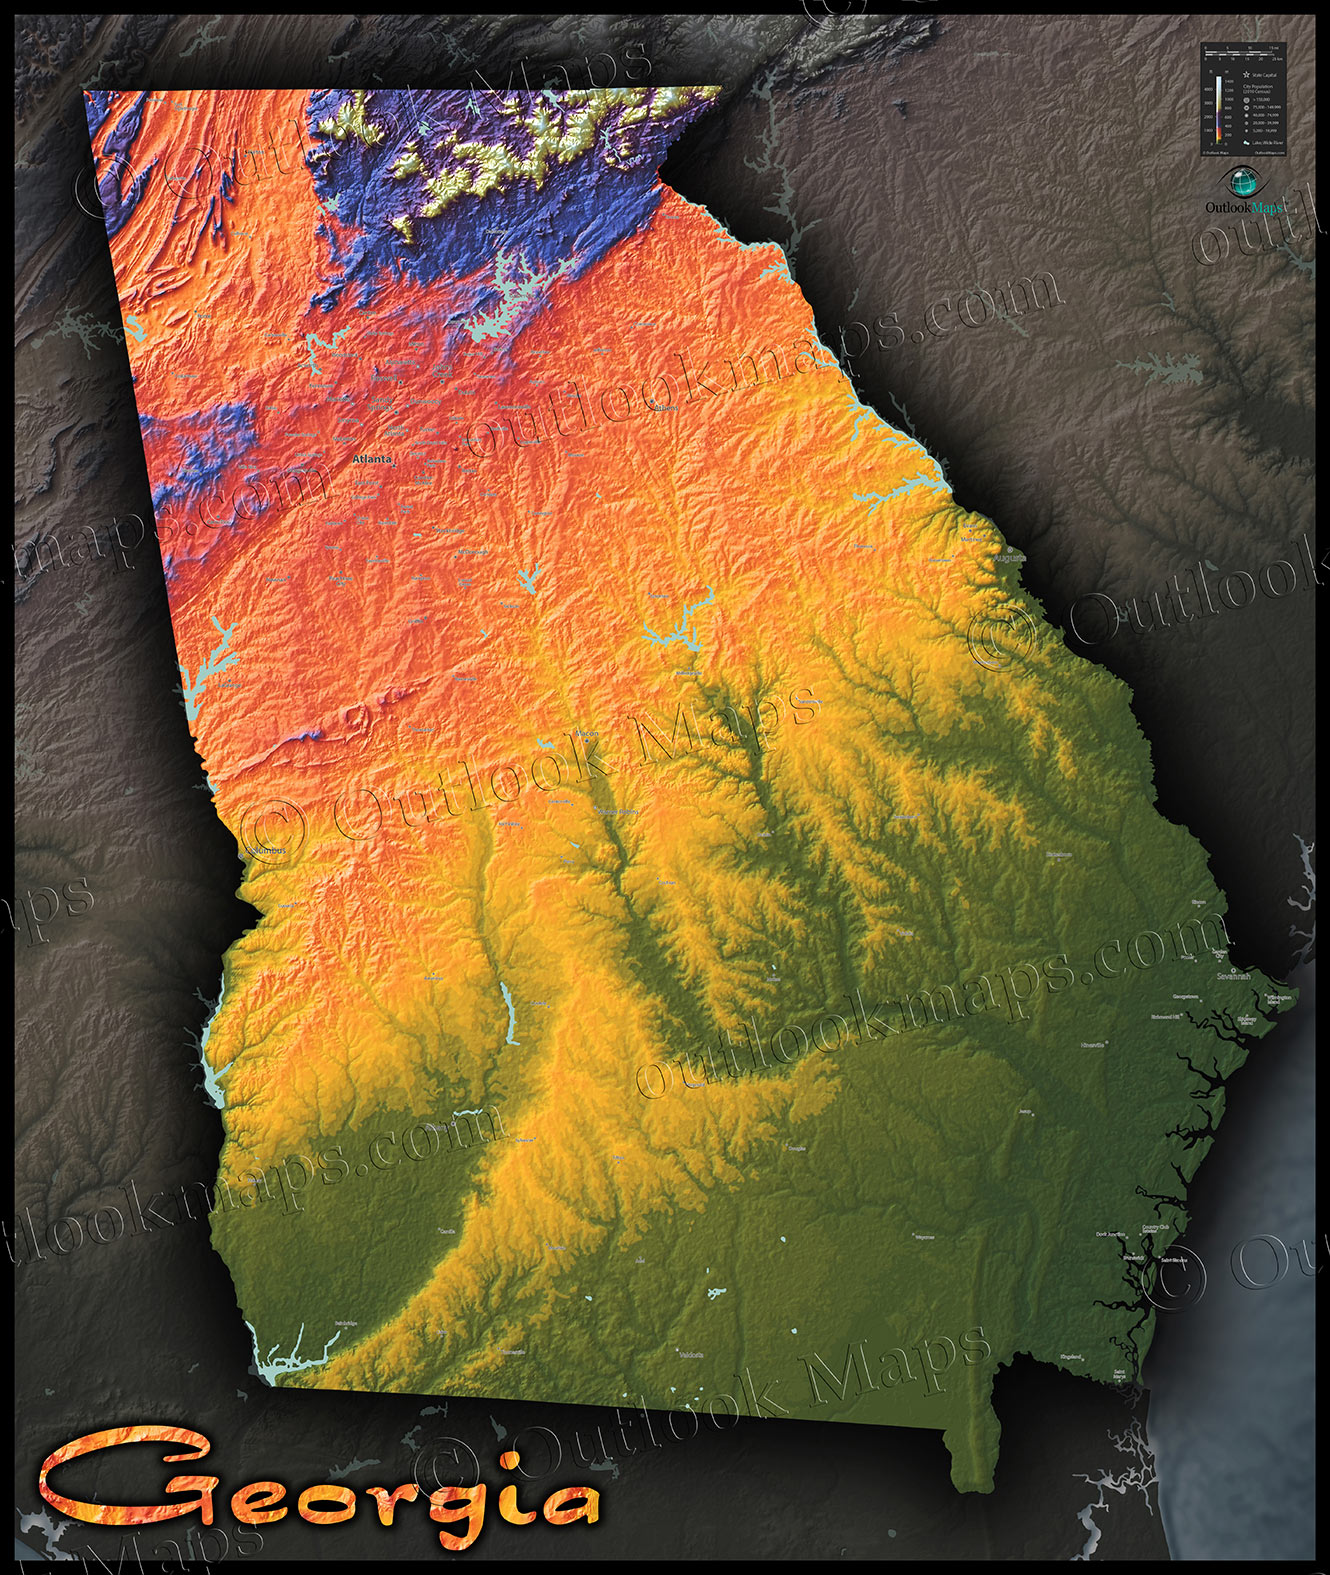 Georgia Elevation Map Topographic Georgia State Map | Vibrant Physical Landscape